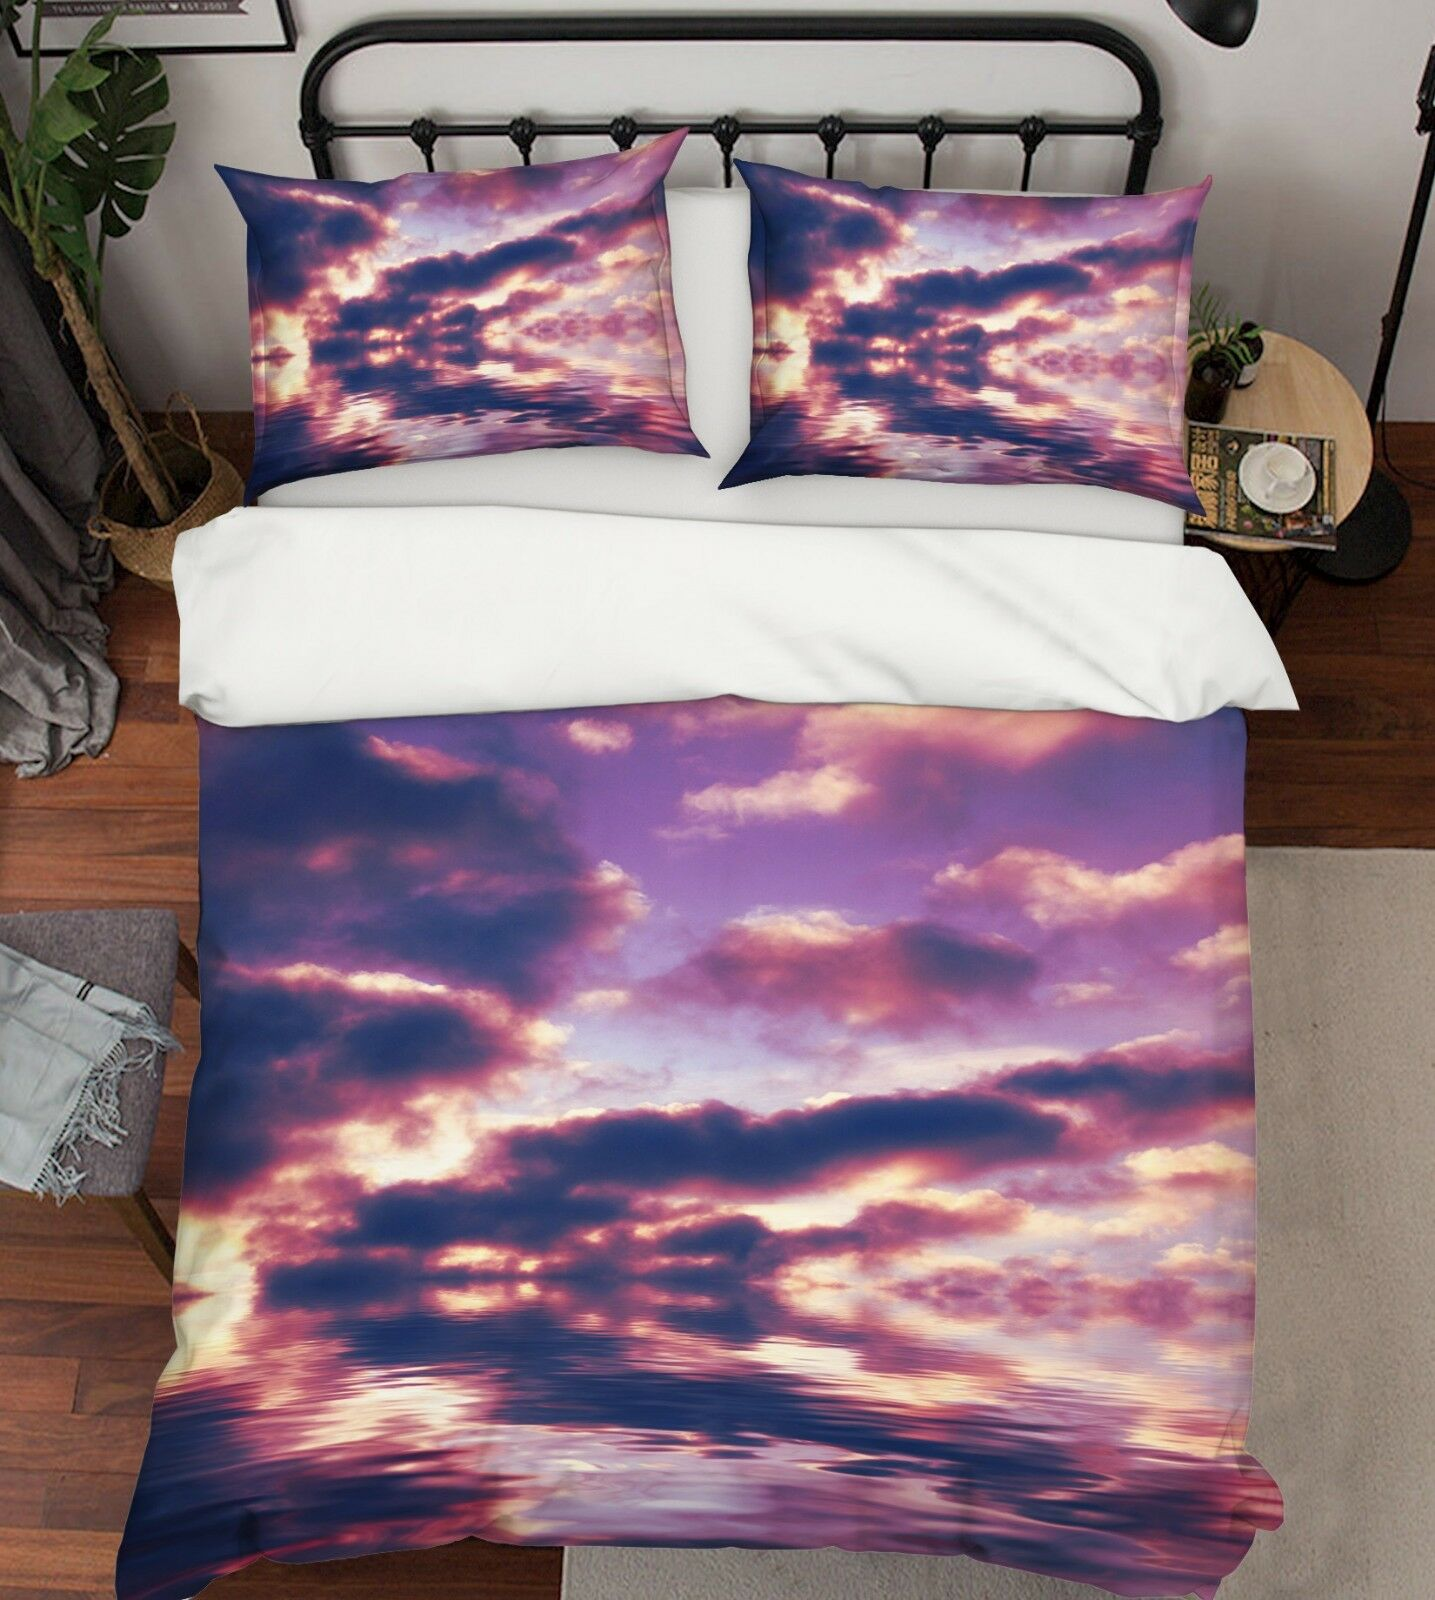 3D Purple Clouds Ocean 1 Bed Pillowcases Quilt Duvet Cover Set Single Queen King